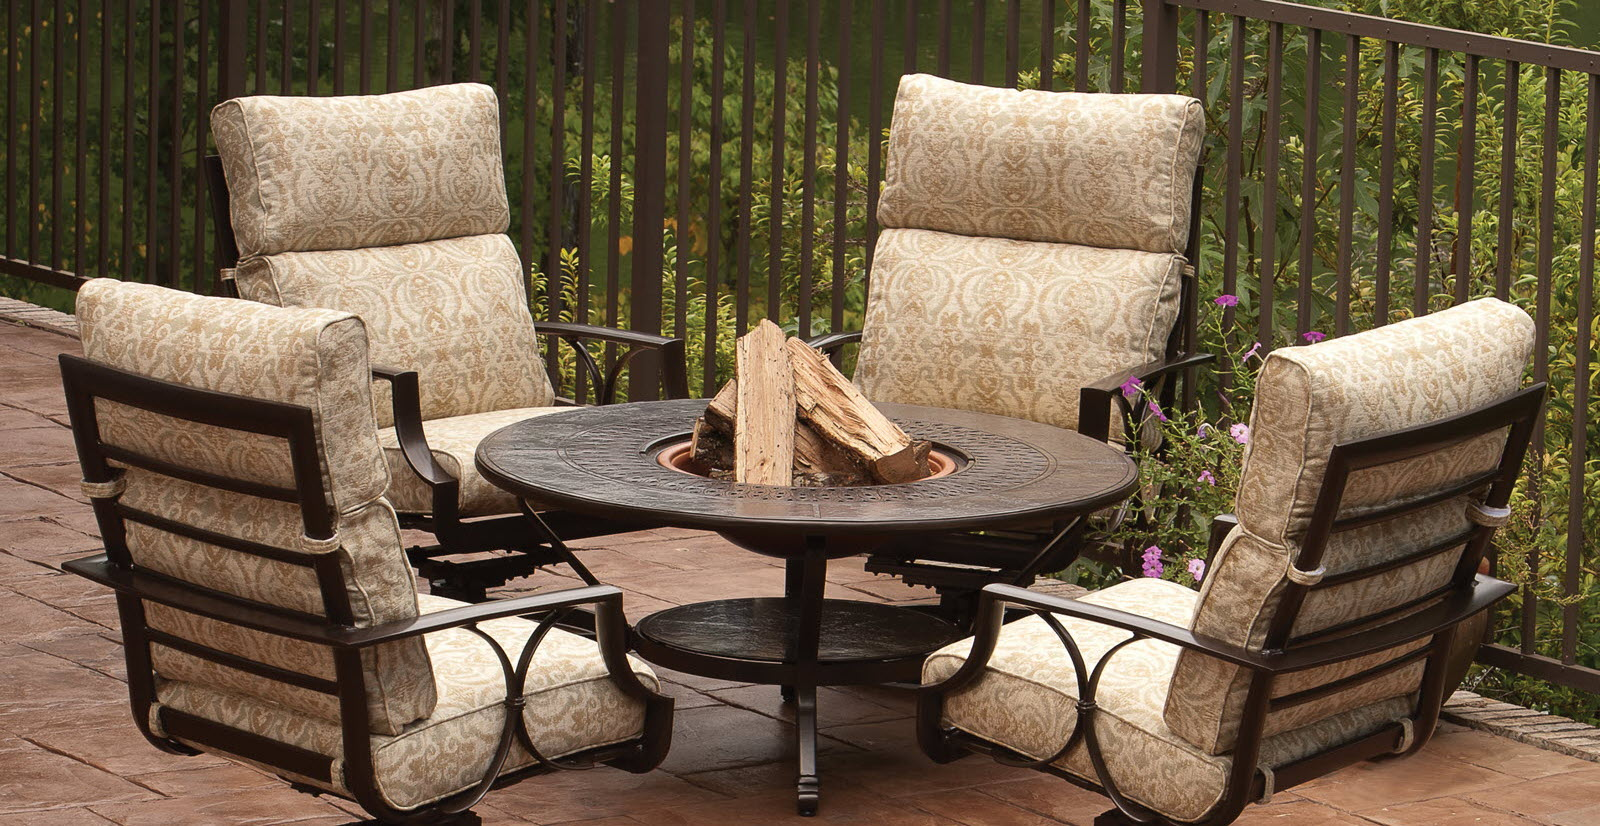 Firepit Chairs Dining Table Fire Pit Dining Table Chairs